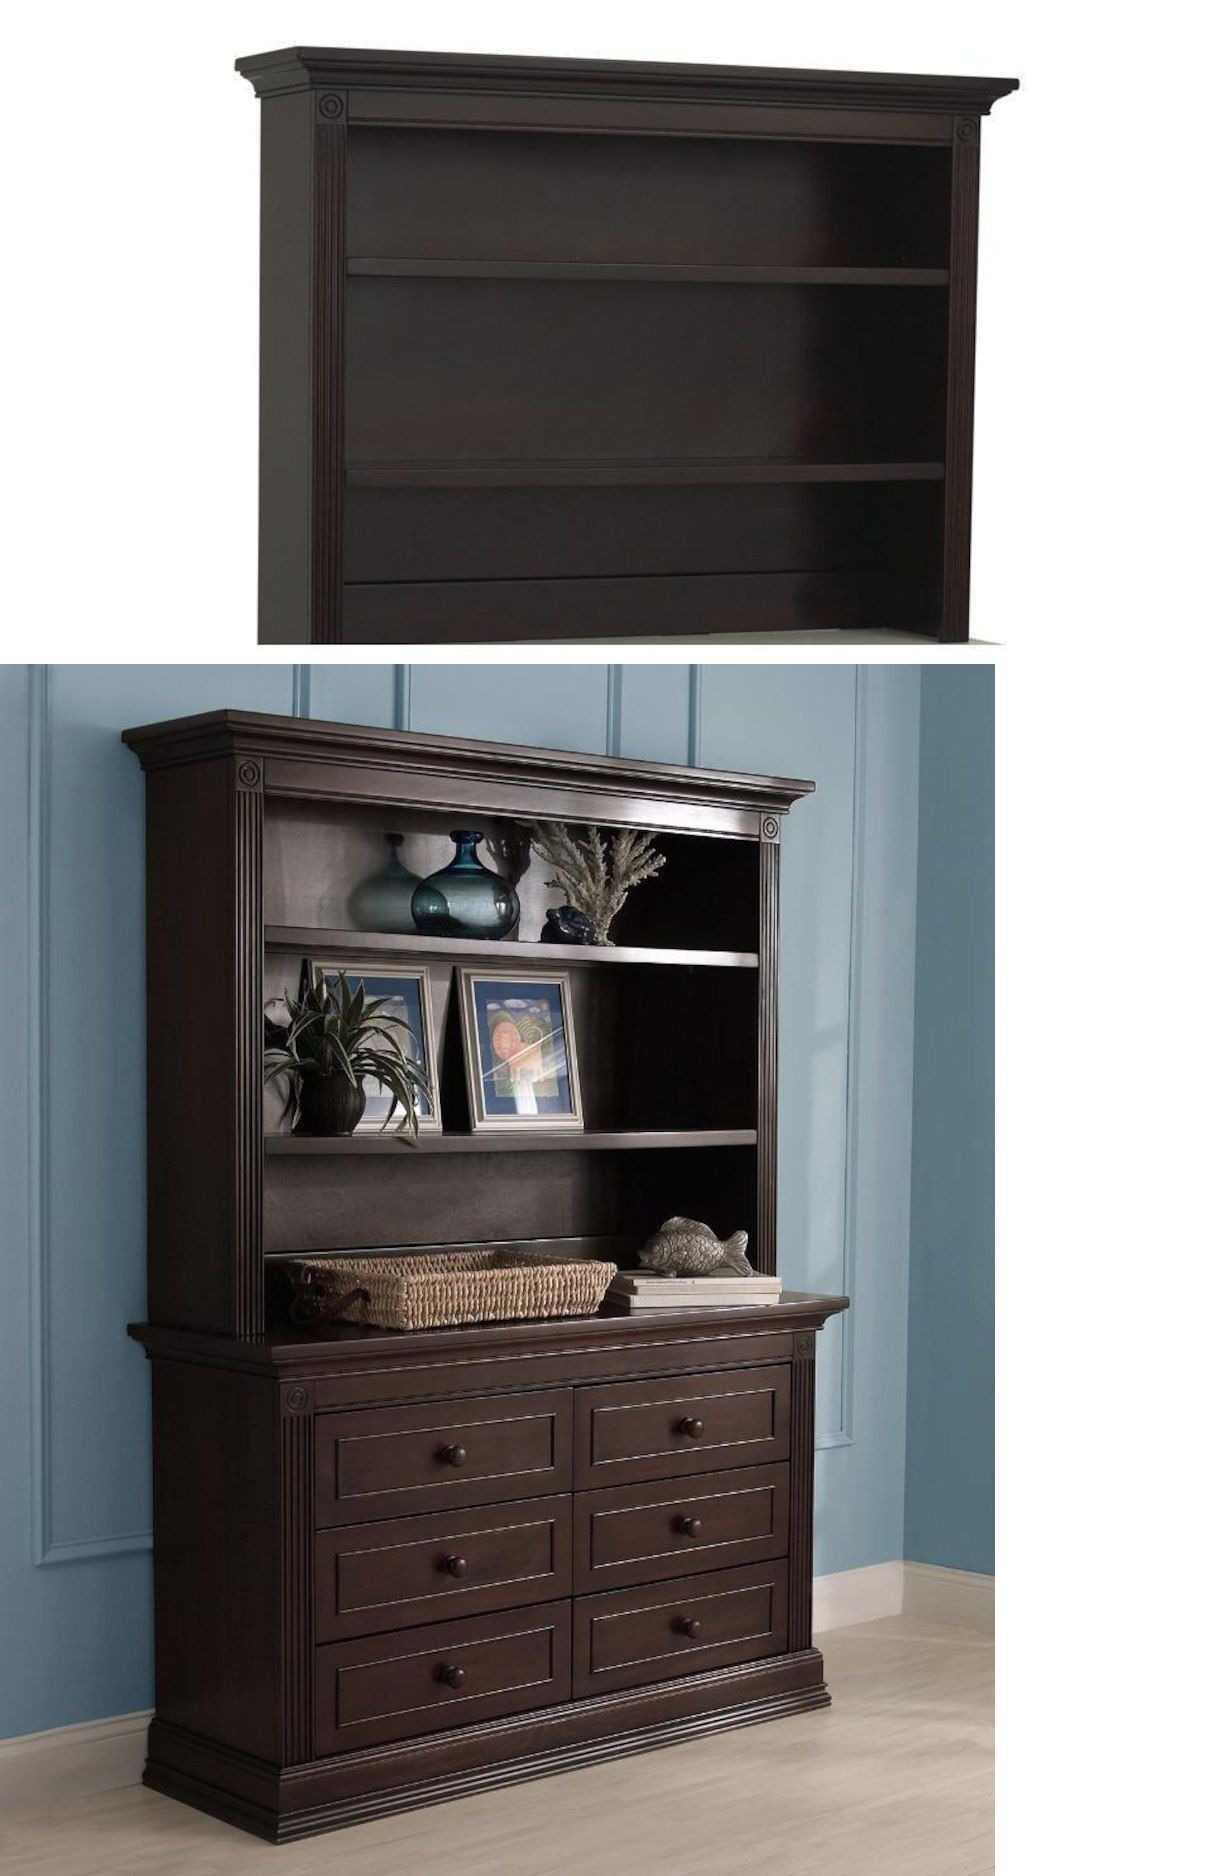 Nursery Furniture Sets 20425 Baby Cache Montana Hutch Espresso It Now